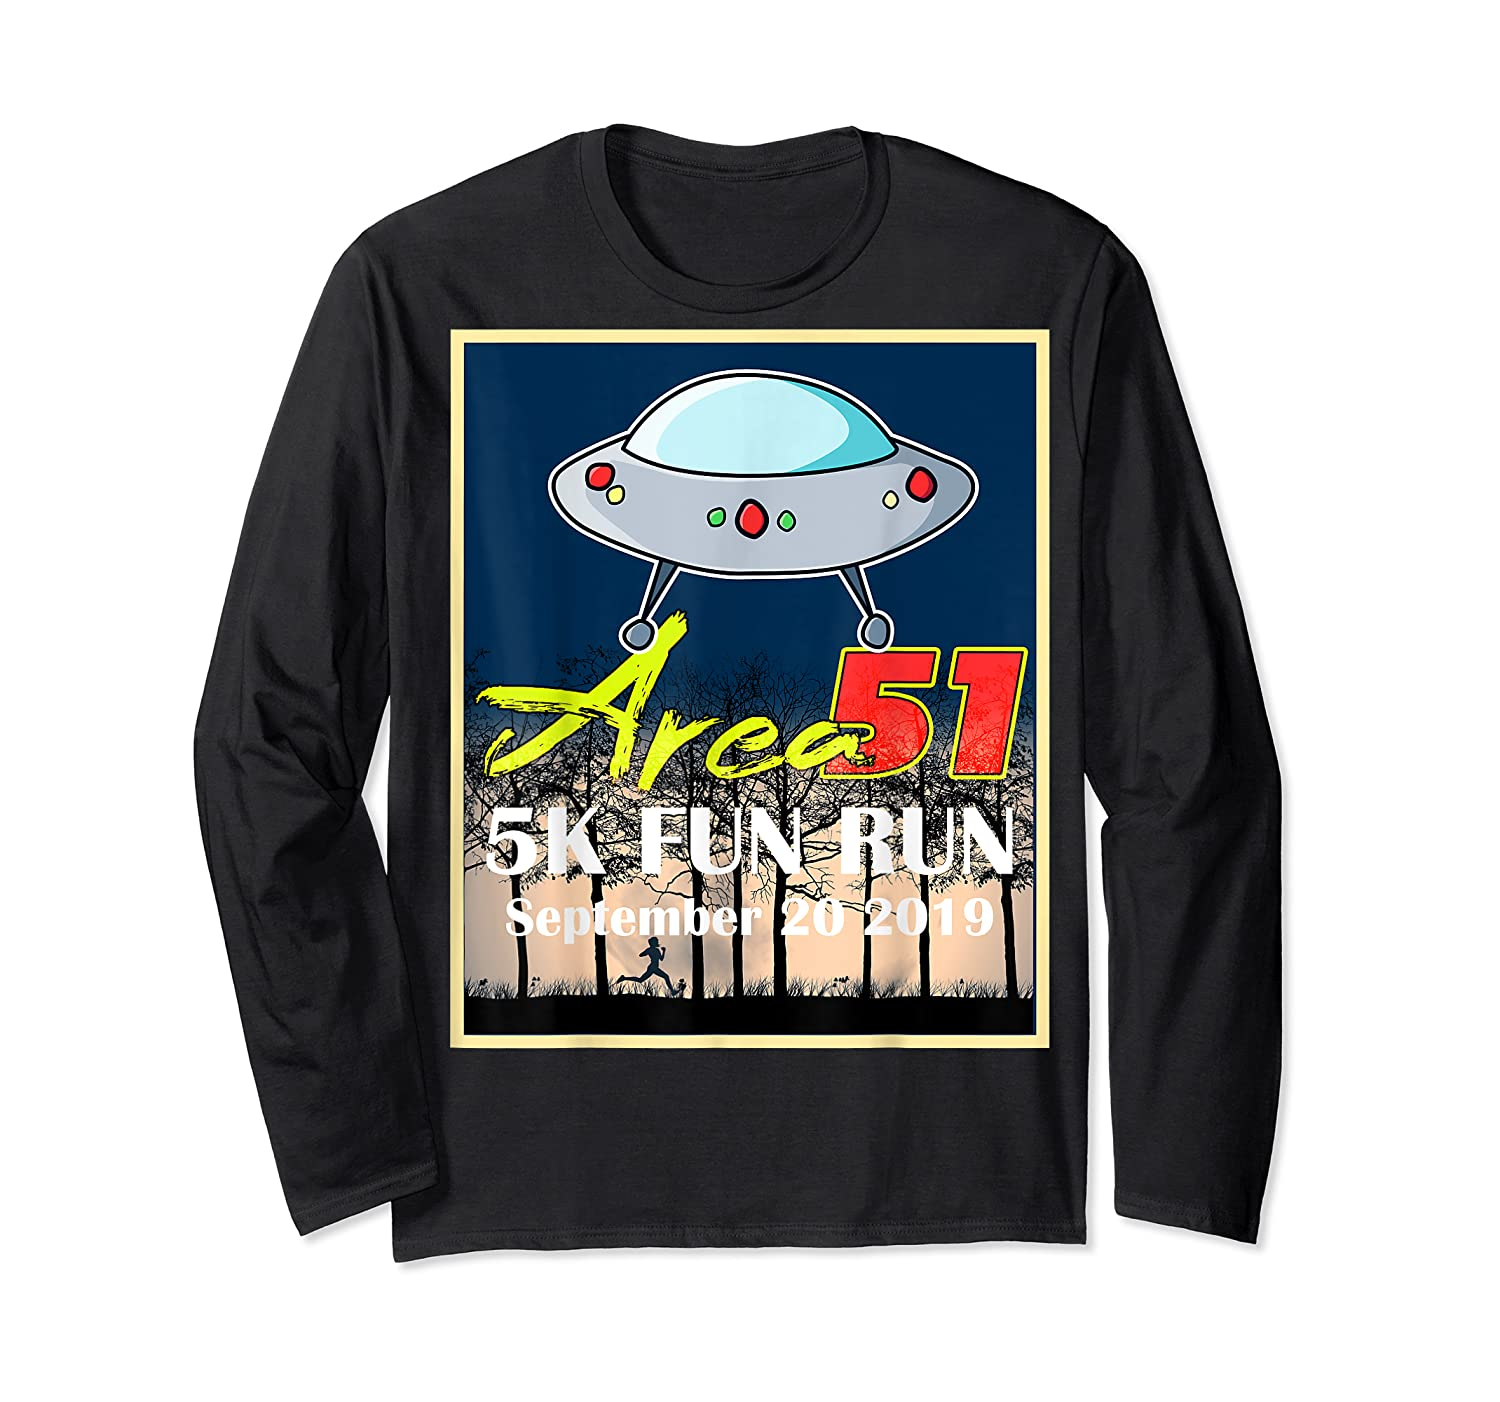 Area 51 5k Fun Run They Can't Stop All Of Us Shirts Long Sleeve T-shirt